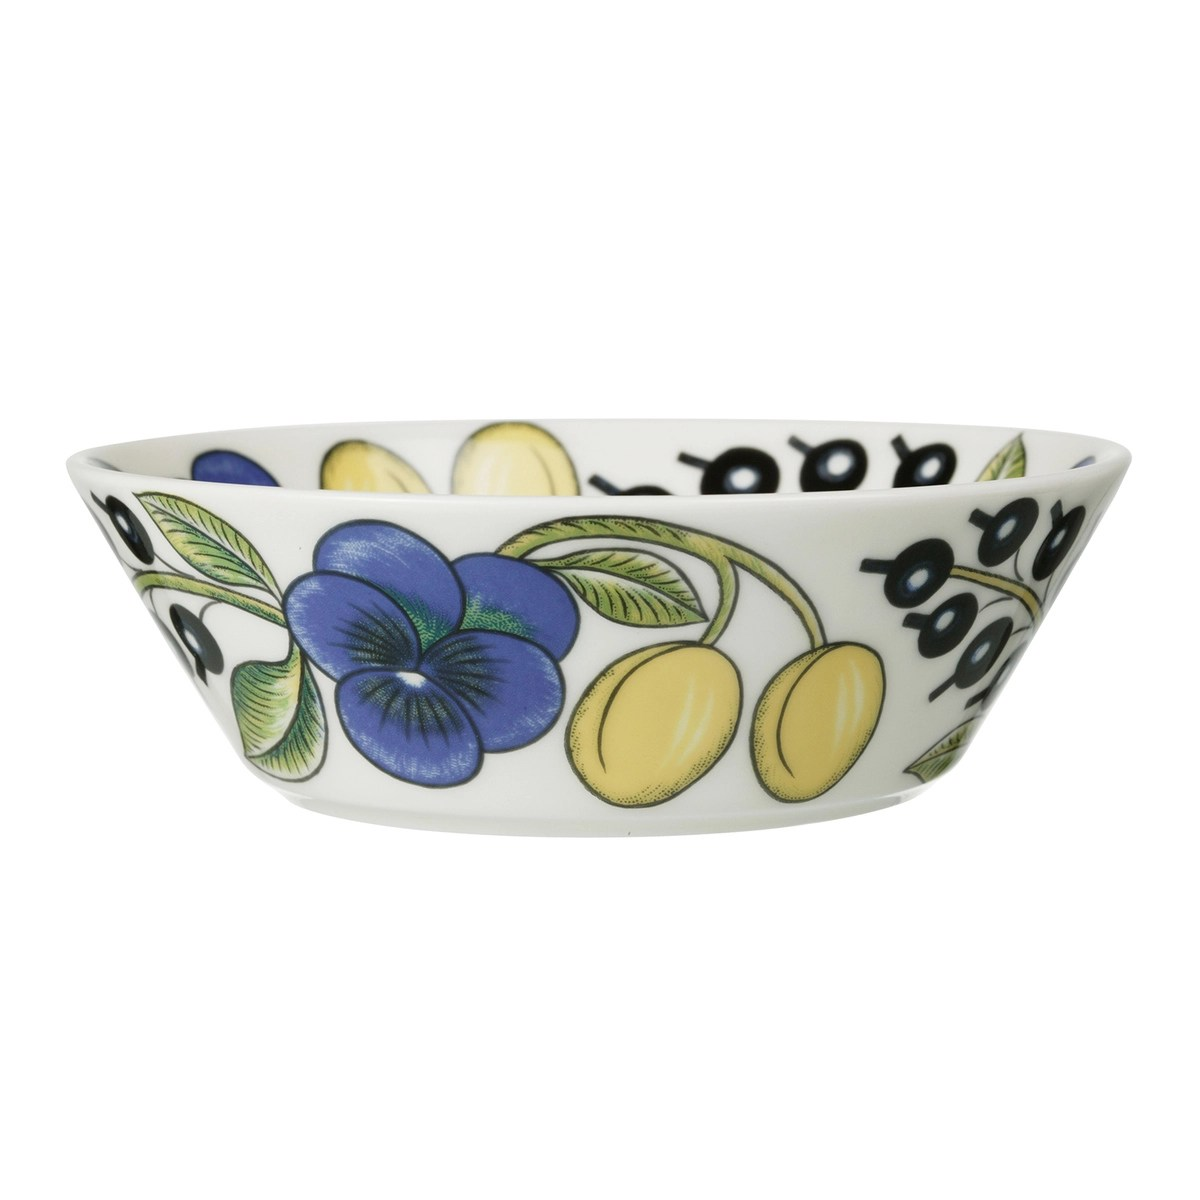 17 Cm Arabia Paratiisi Bowl 17 Cm Finnish Design Shop